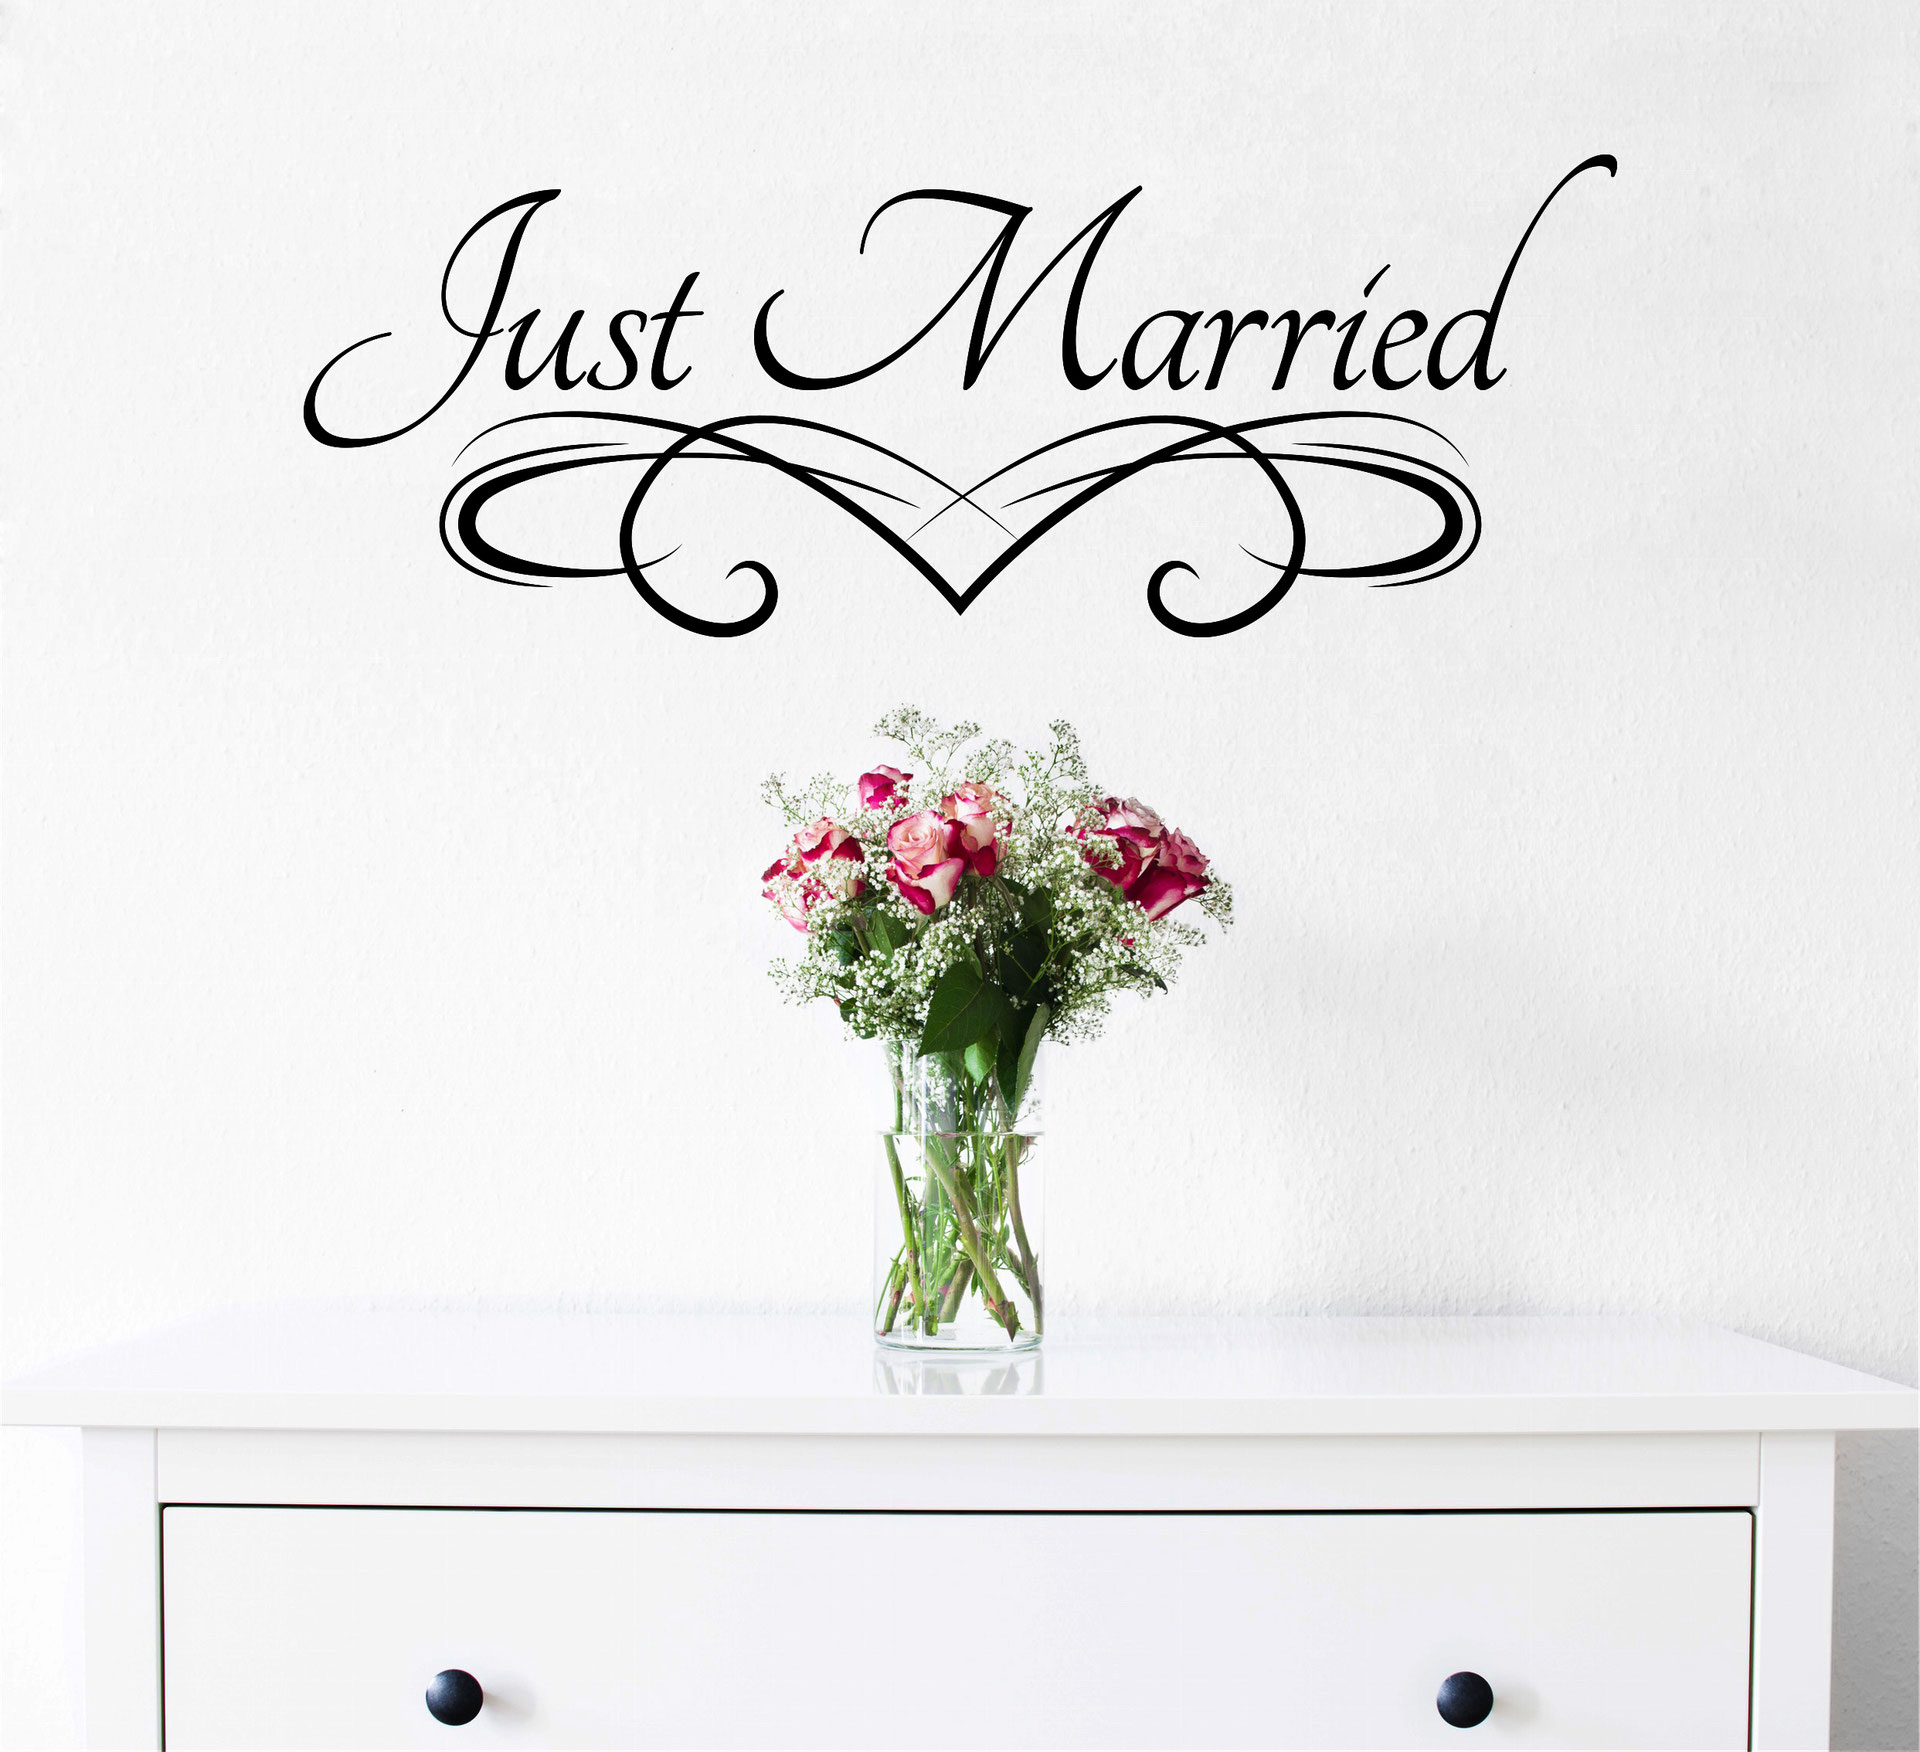 Just Married Quotes Just Married  Vinyl  Wall Art Company